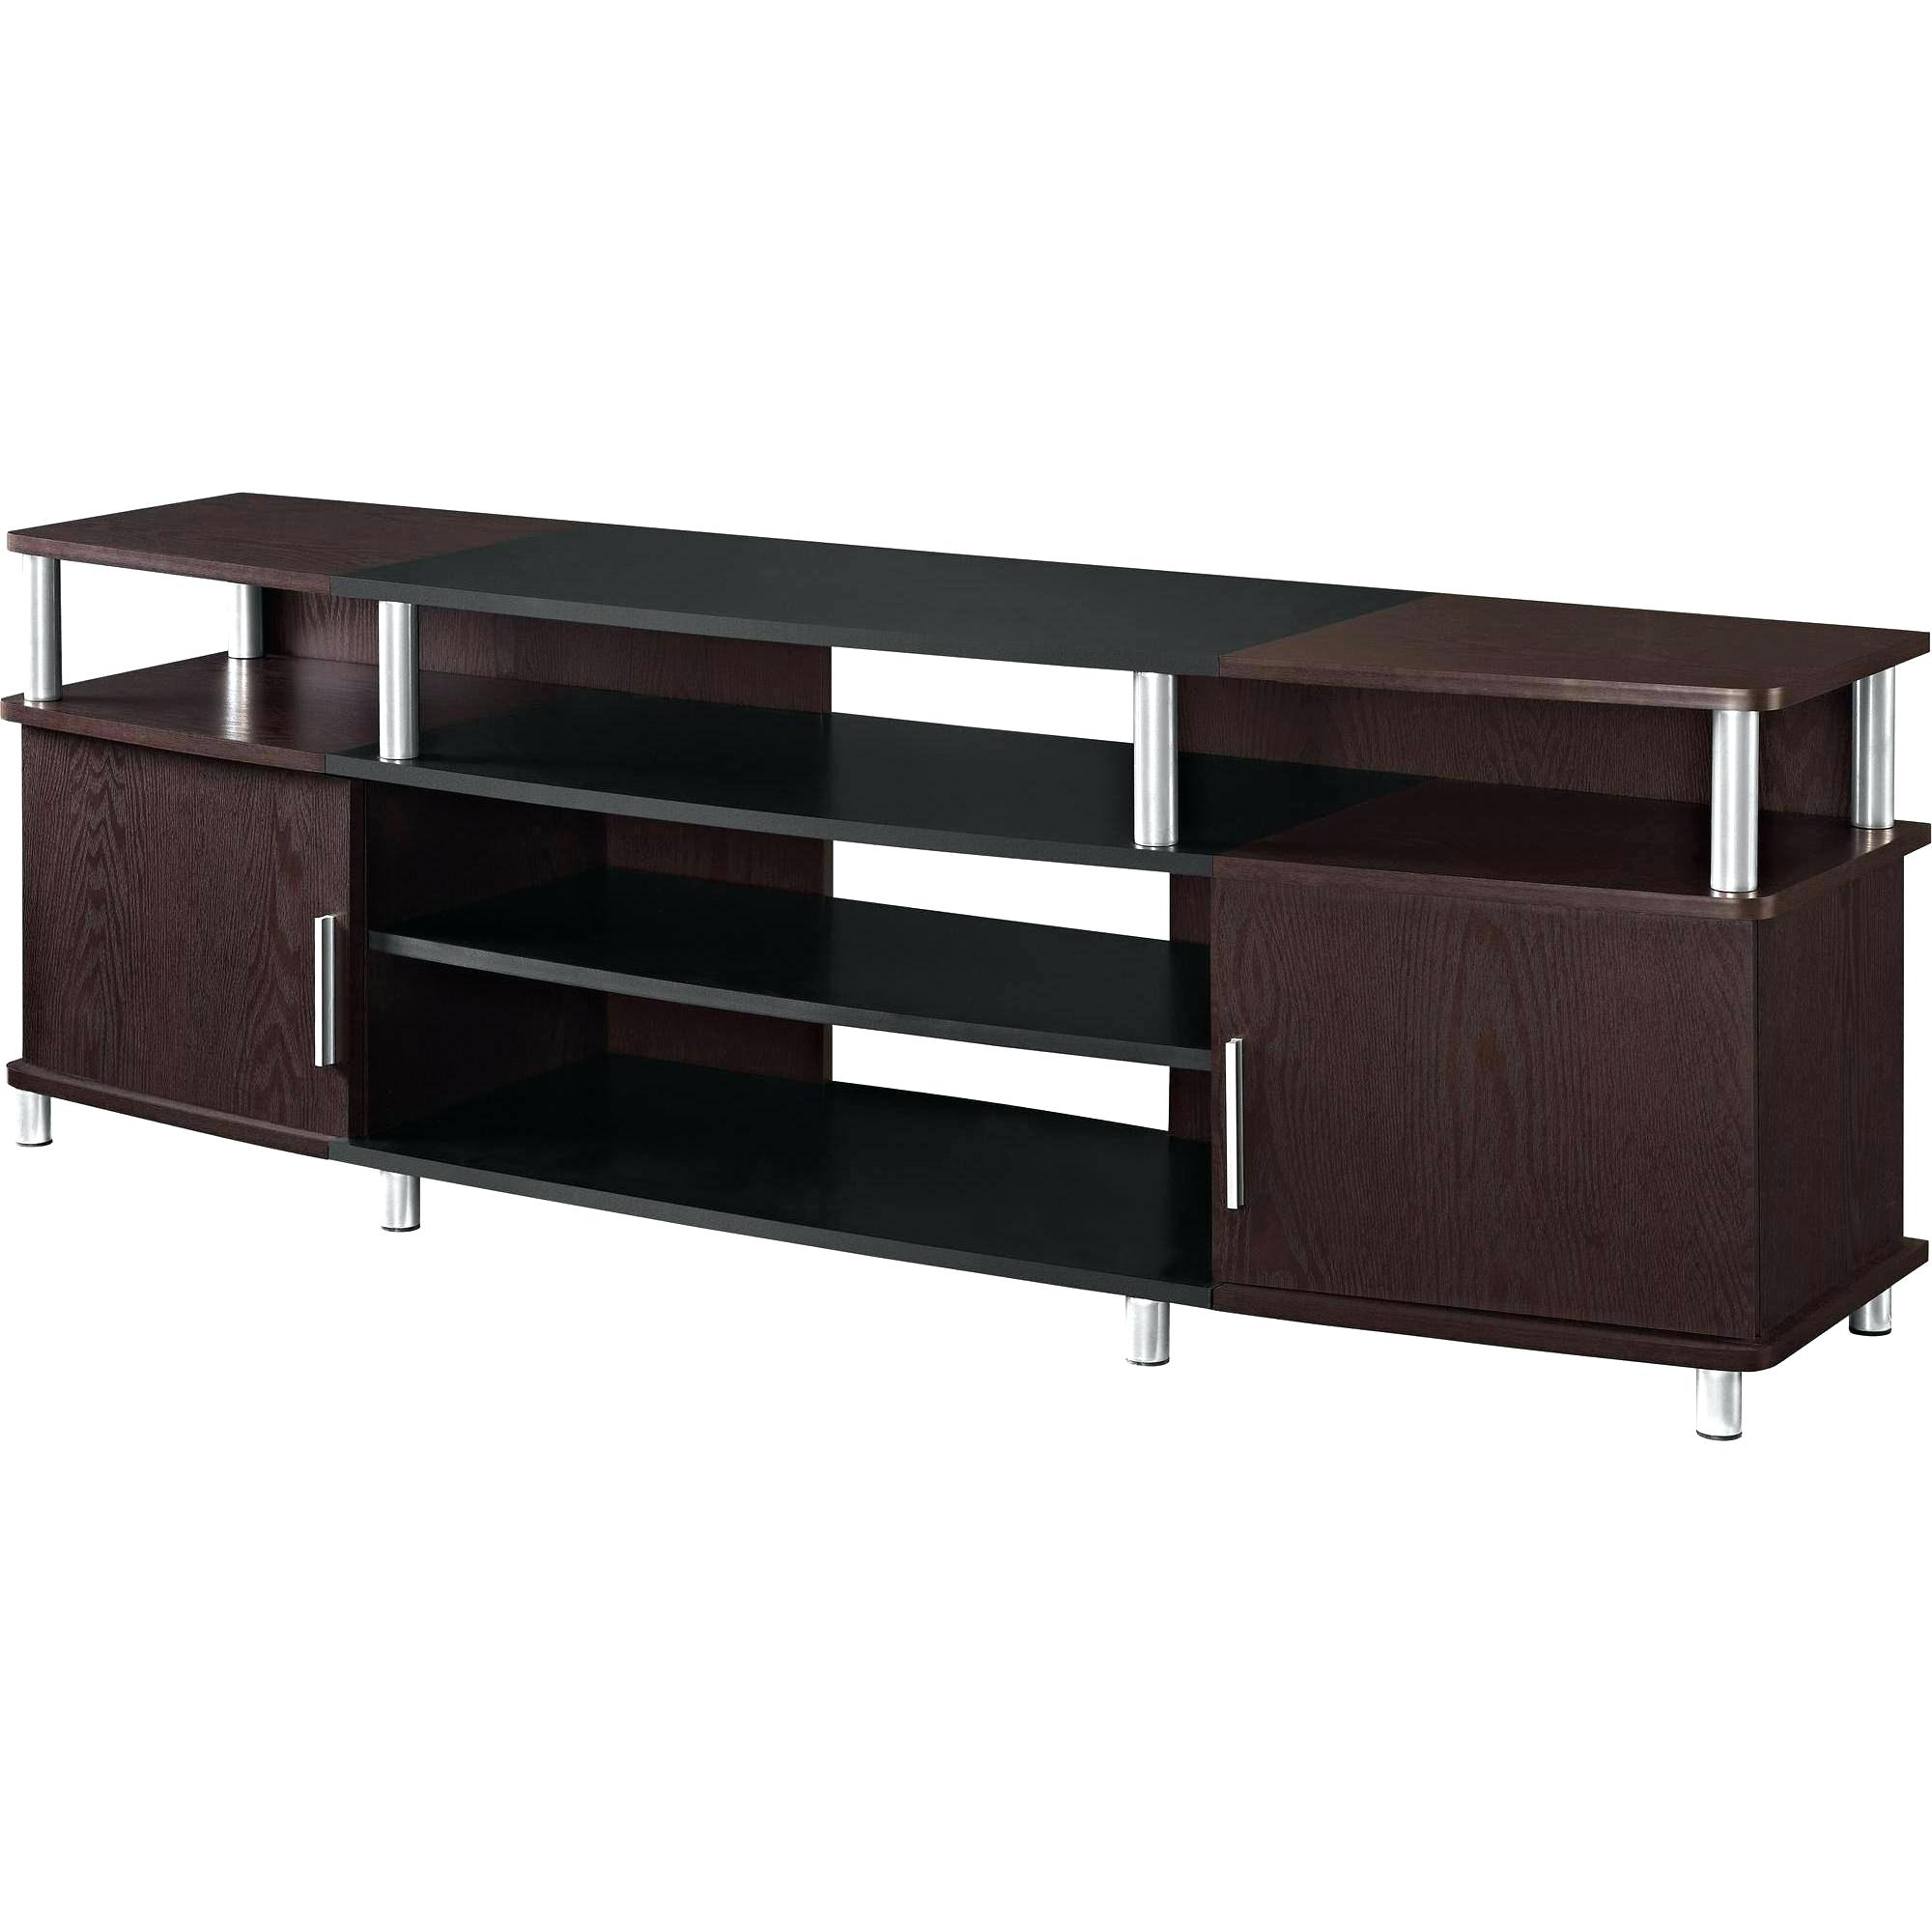 2017 Tv Stands For 70 Inch Tvs With Regard To Tv Stands For 70 Inch Tvs S – Kcscienceinc (View 20 of 20)